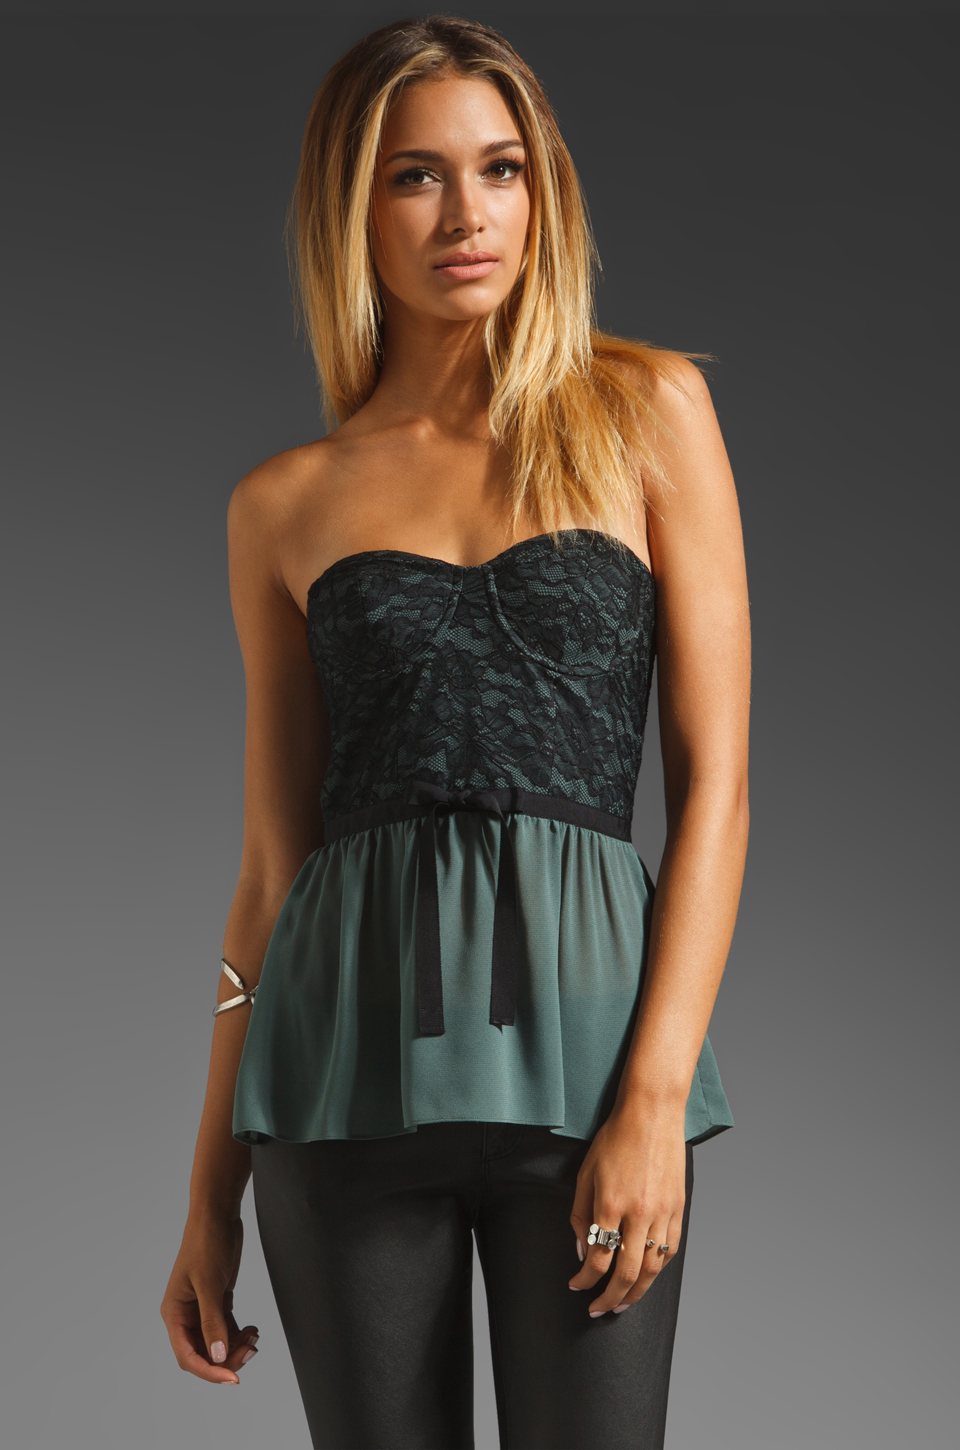 Paper Crown by Lauren Conrad Katherine Lace Top in Black/Pine